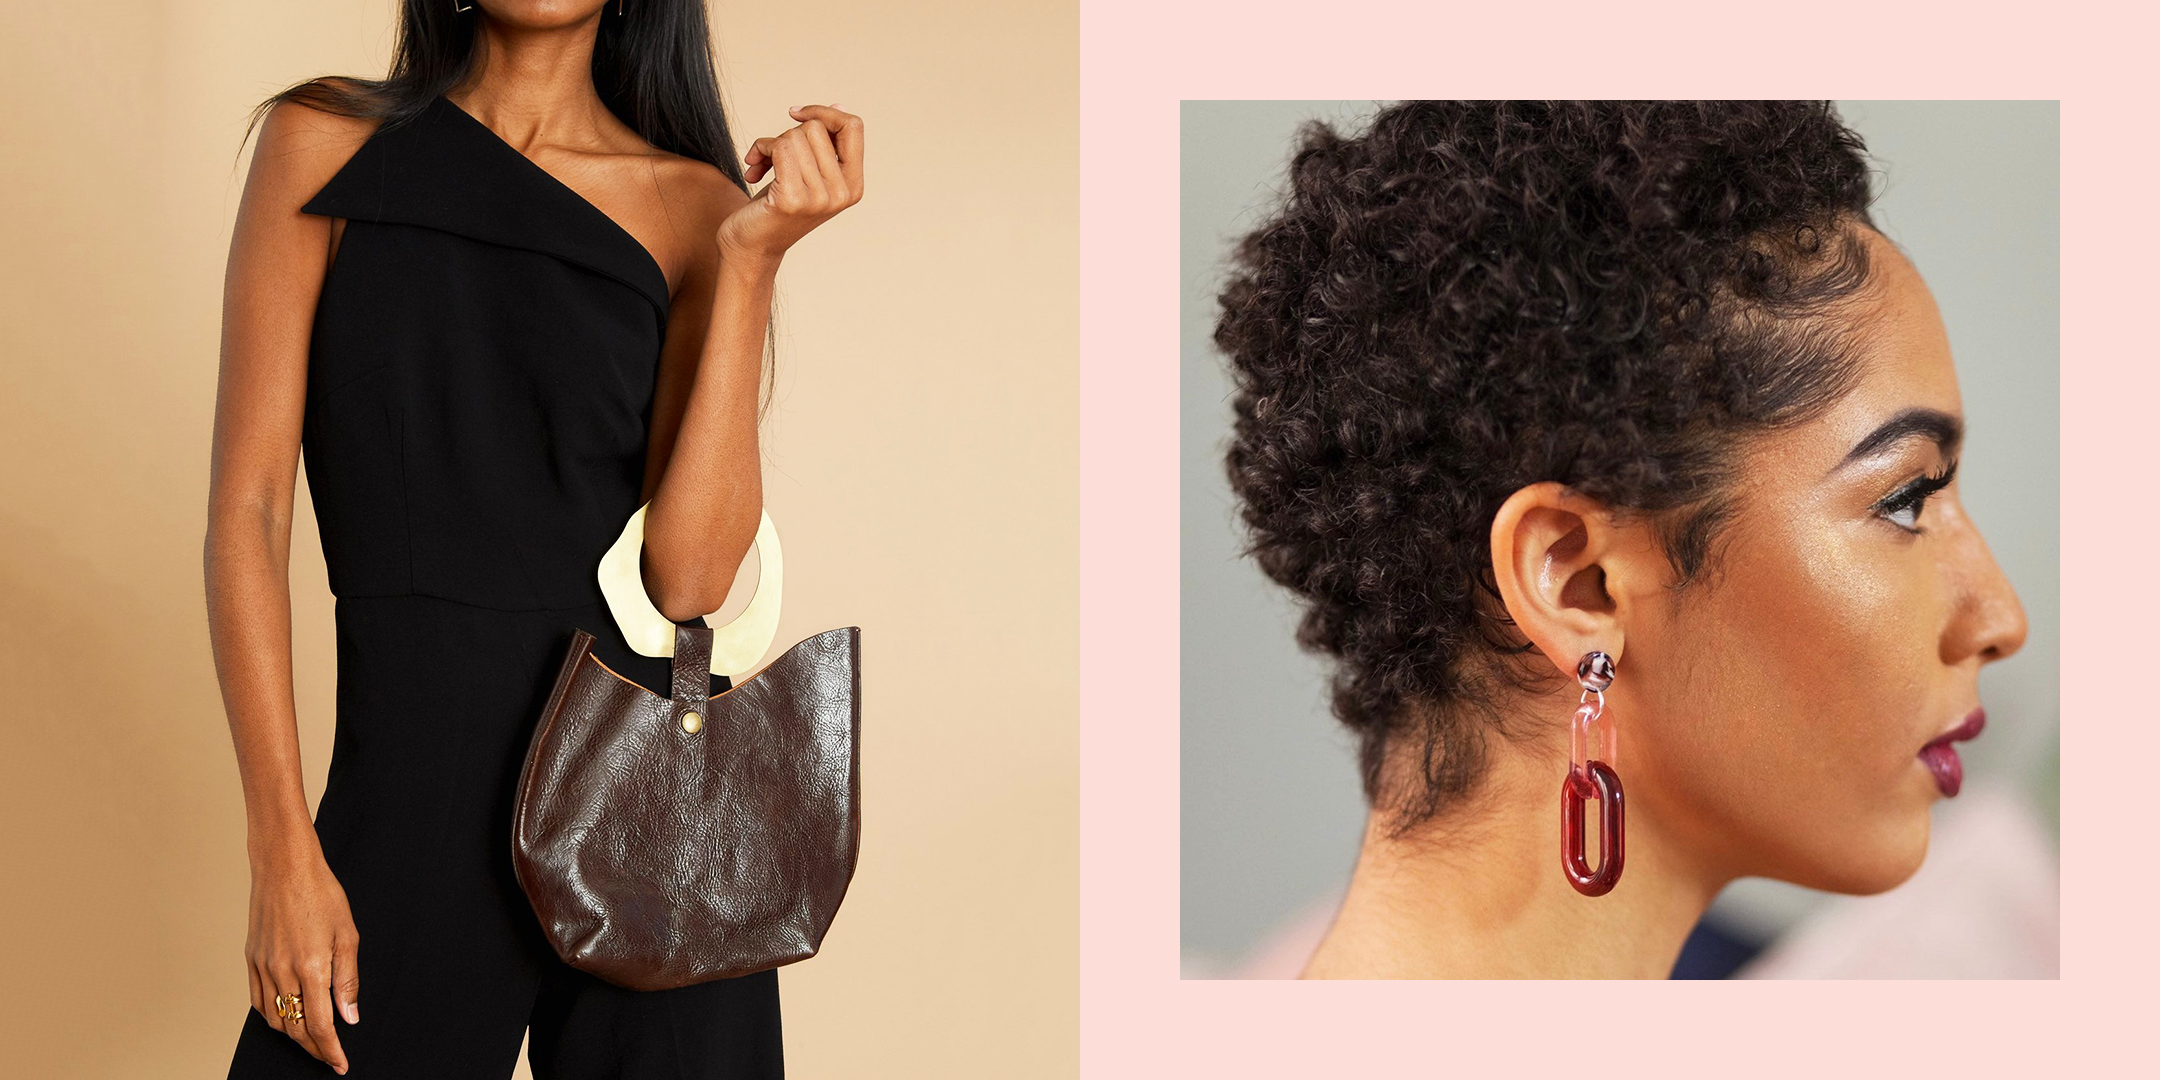 56 Cute Gift Ideas That the Women In Your Life Definitely Deserve